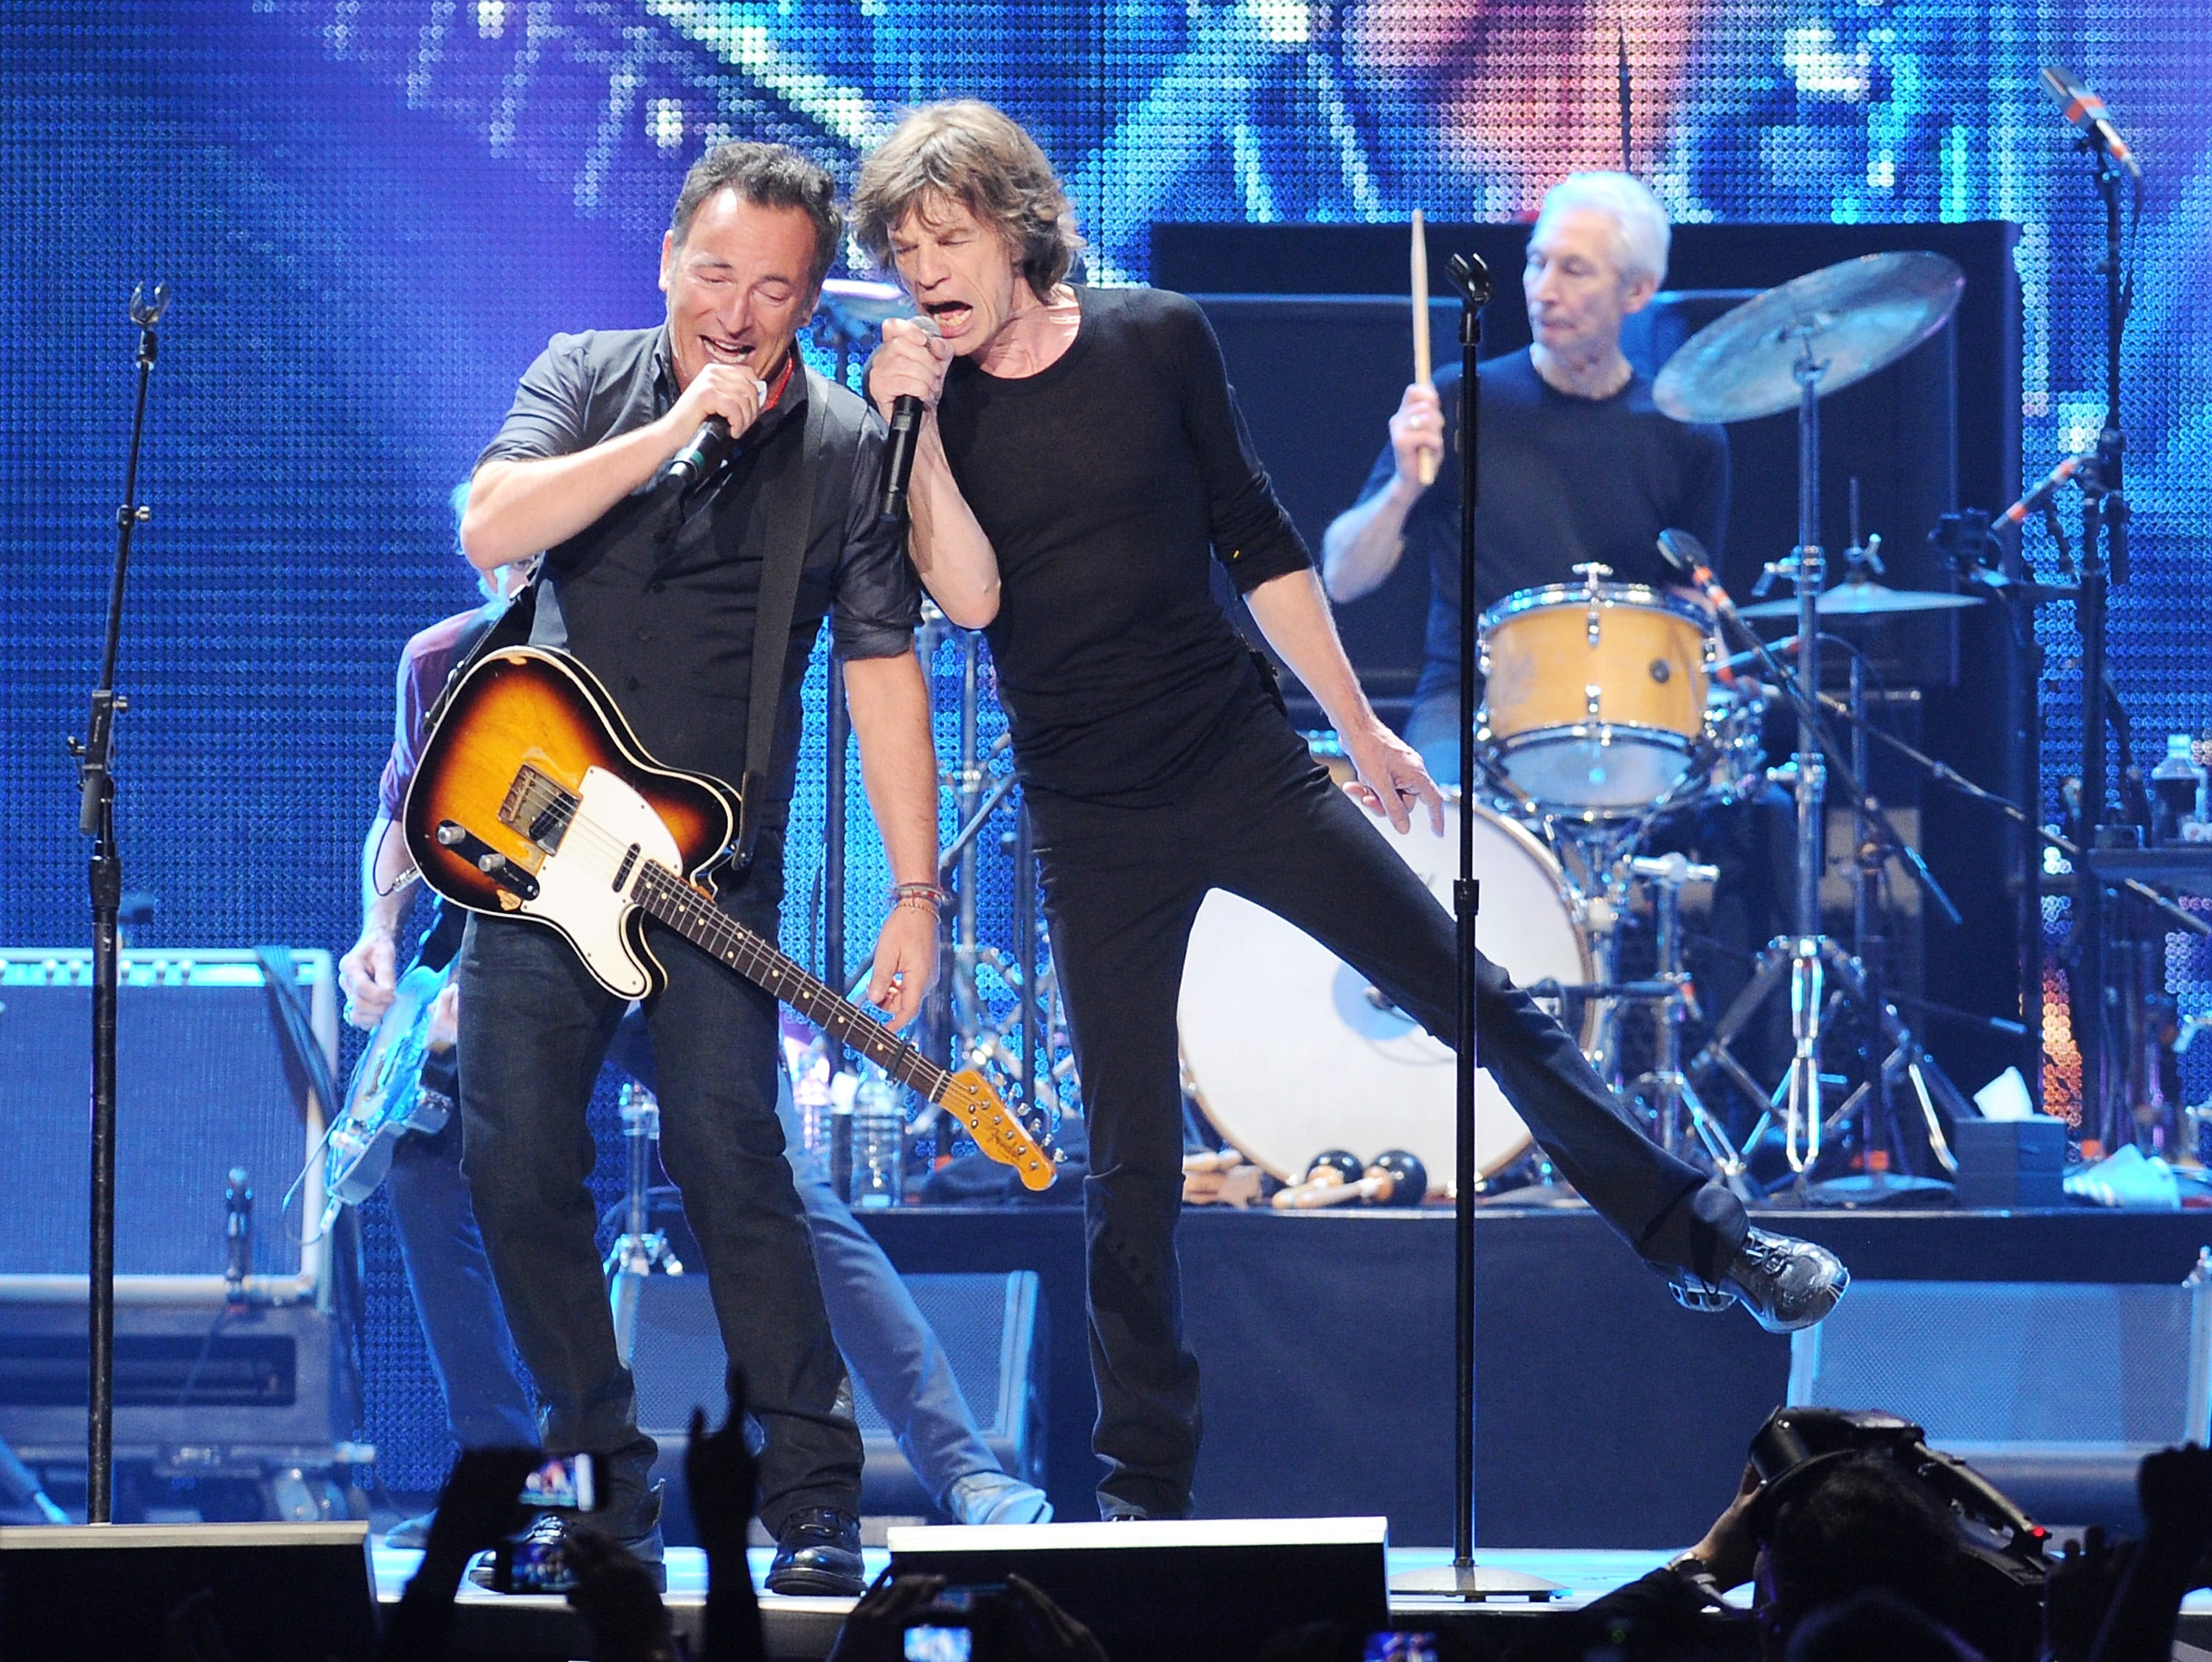 Musician Bruce Springsteen, left, performs with Mick Jagger of The Rolling Stones at the Prudential Center in Newark, NJ on Saturday, Dec. 15, 2012. (Photo by Evan Agostini/Invision/AP) ORG XMIT: NYEA110